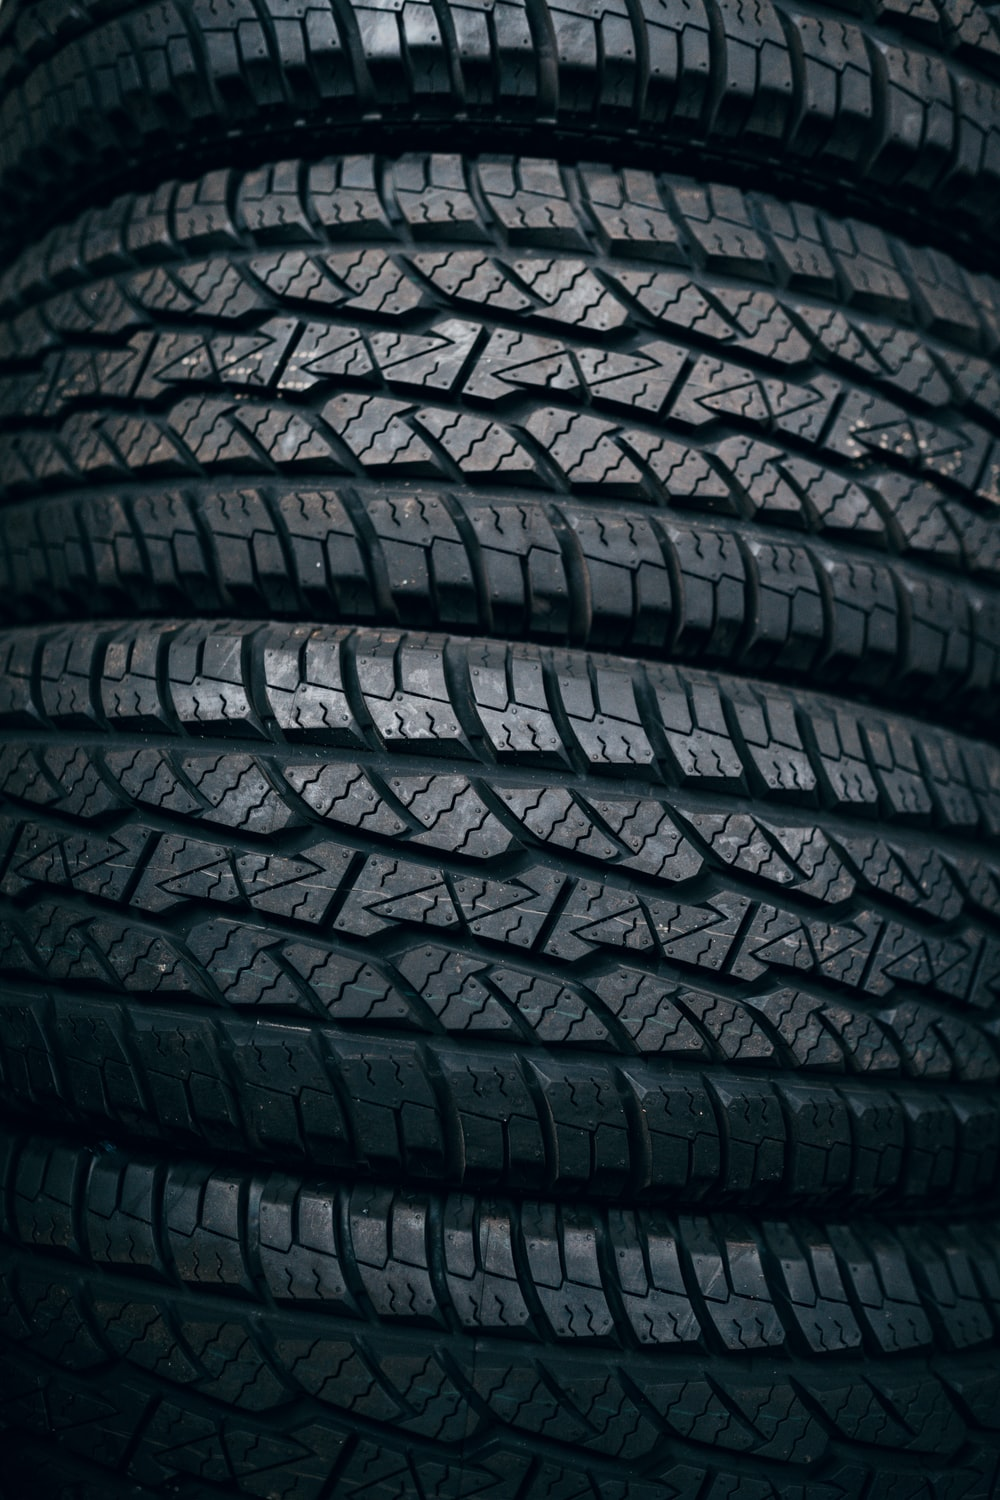 four vehicle tires